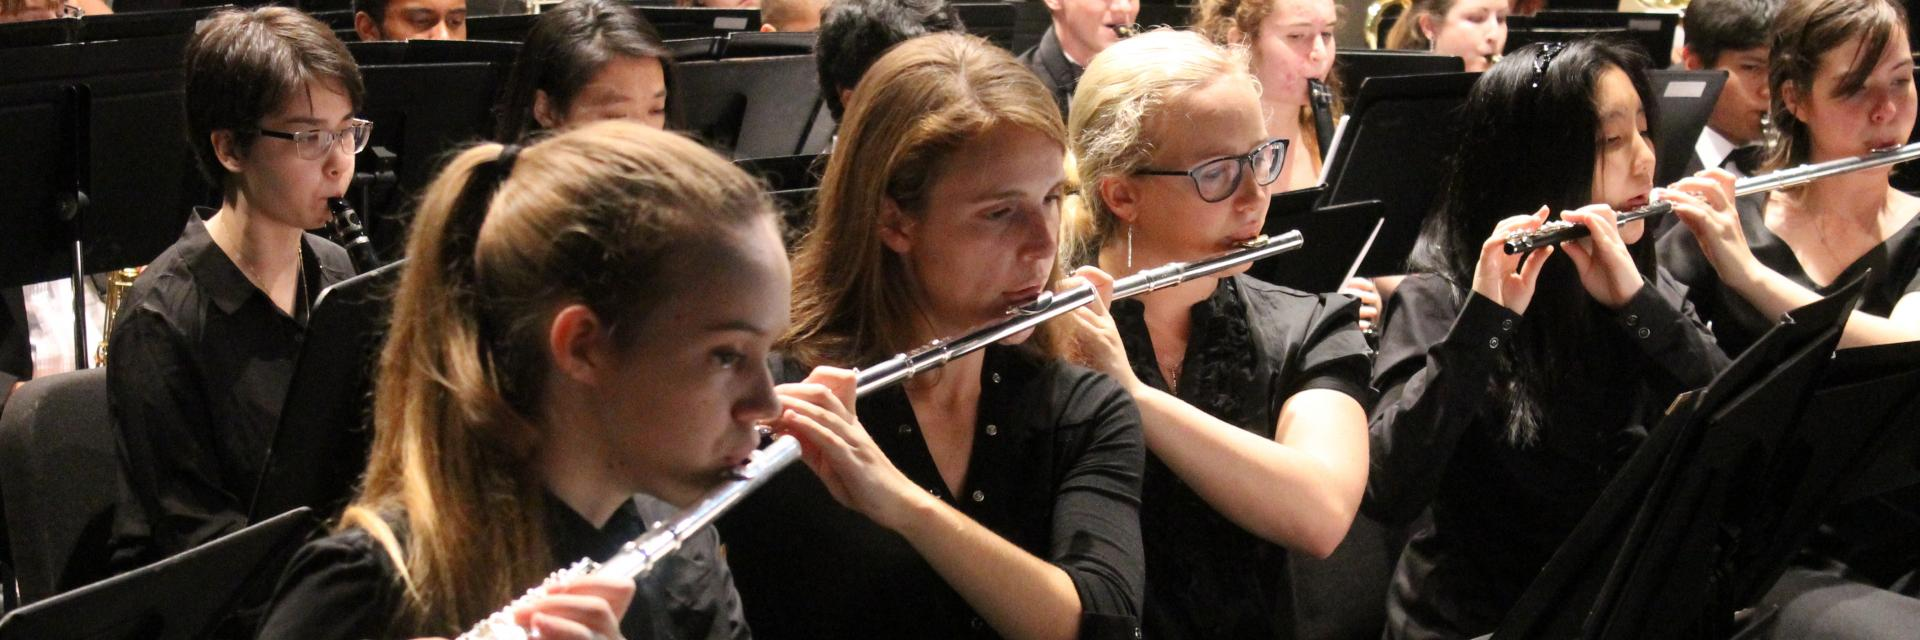 Students in the band playing on their flutes during a concert.